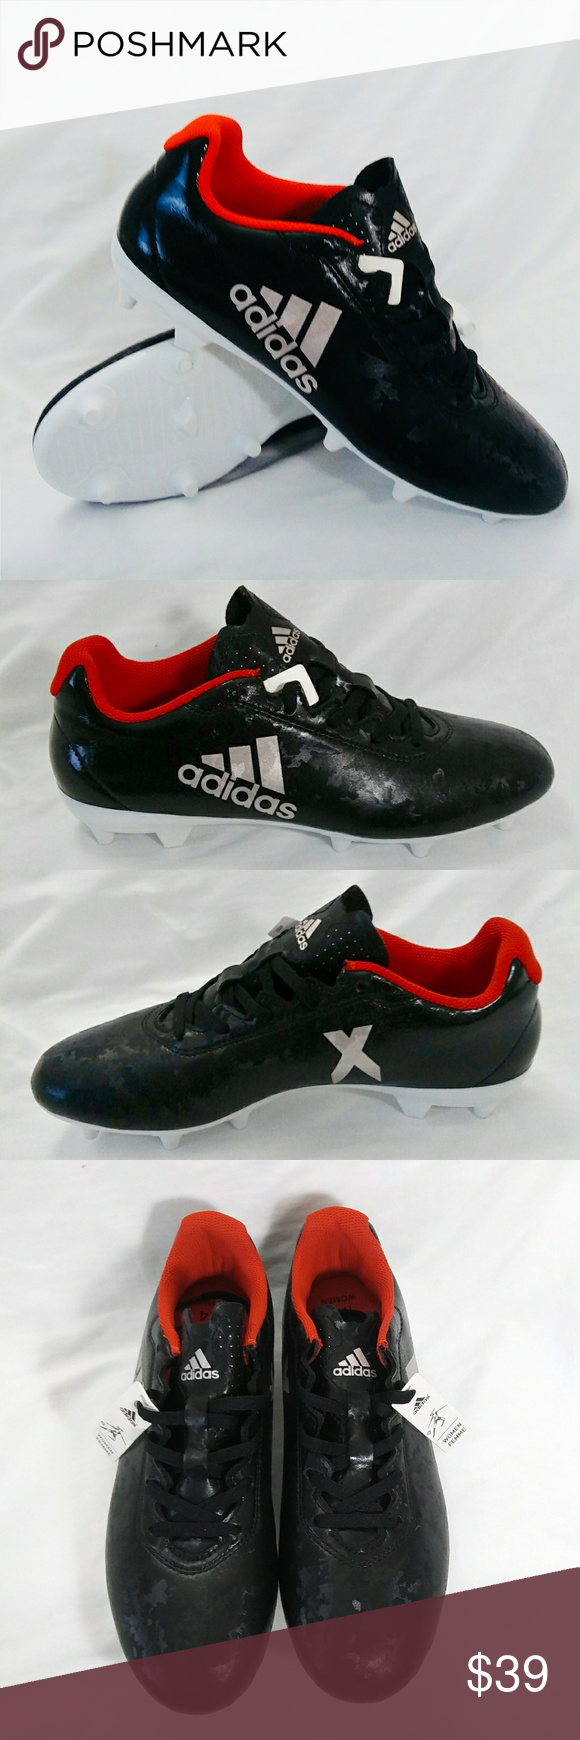 23dd675ec Adidas Women's X 17.4 FG Soccer Cleats Adidas Women's X 17.4 FG Soccer  Cleats US size 6.5 black and red Brand new with some original tags, no box.